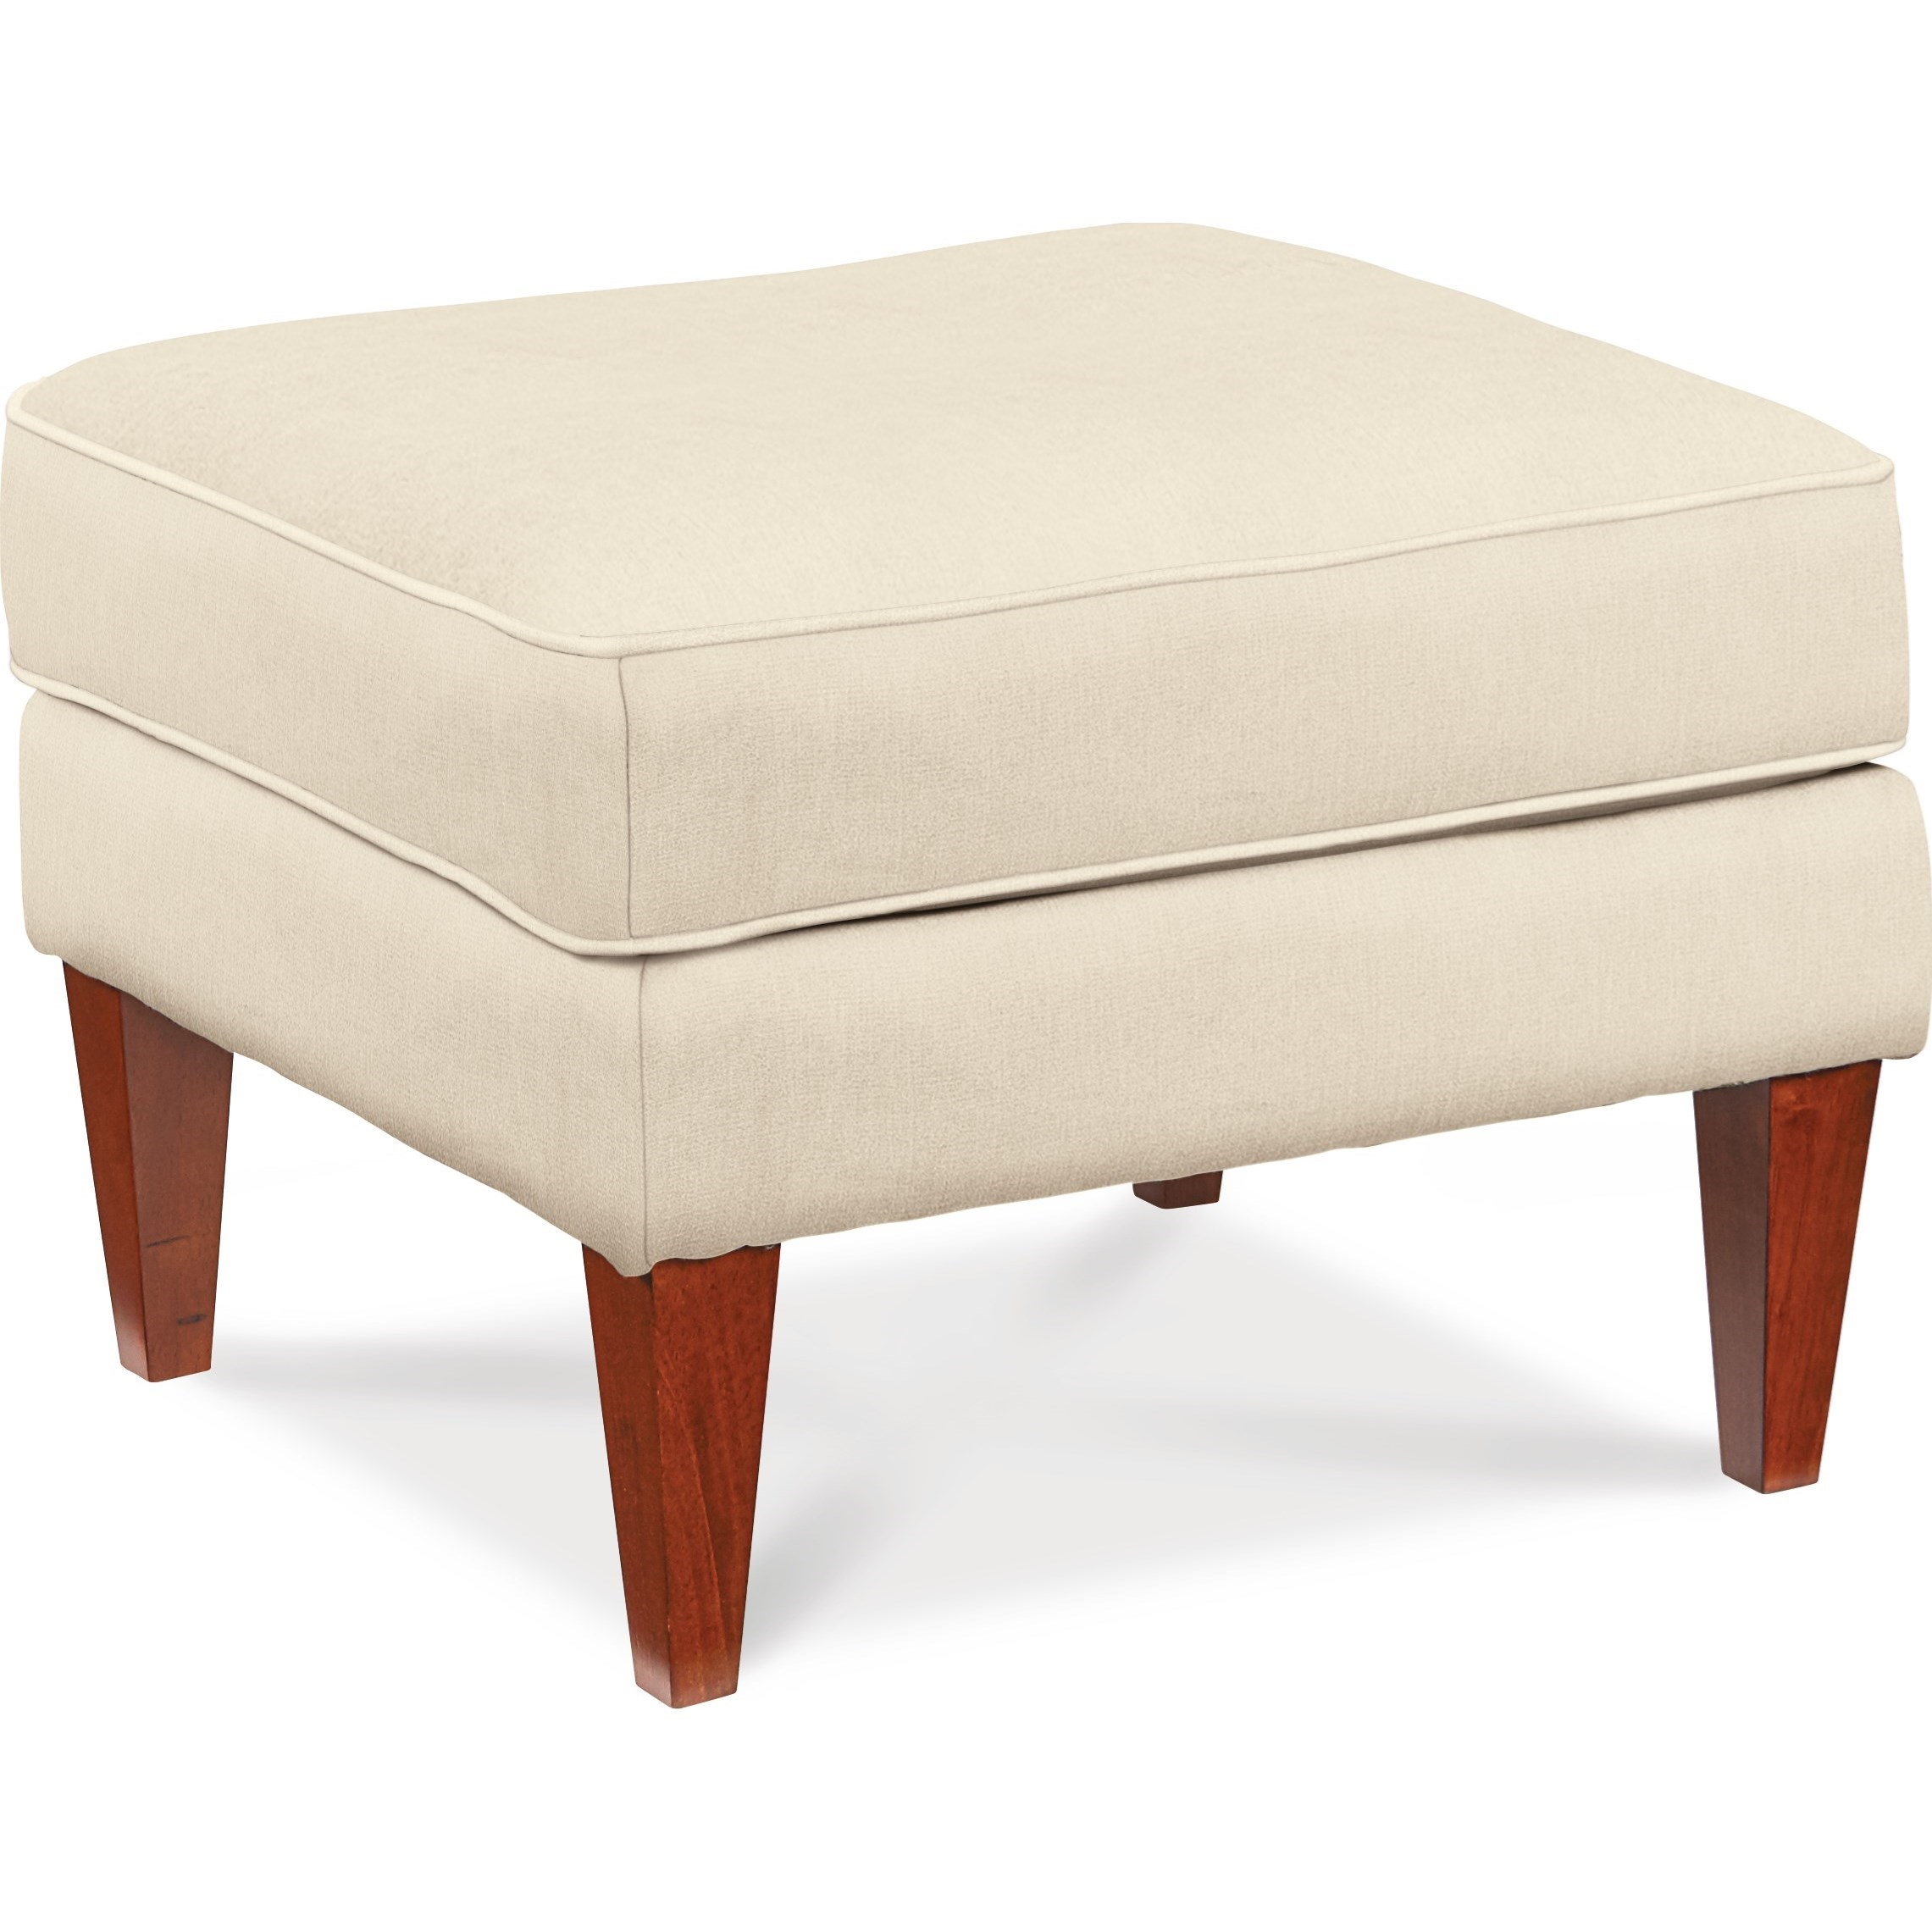 Cambridge Ottoman by La-Z-Boy at Bennett's Furniture and Mattresses